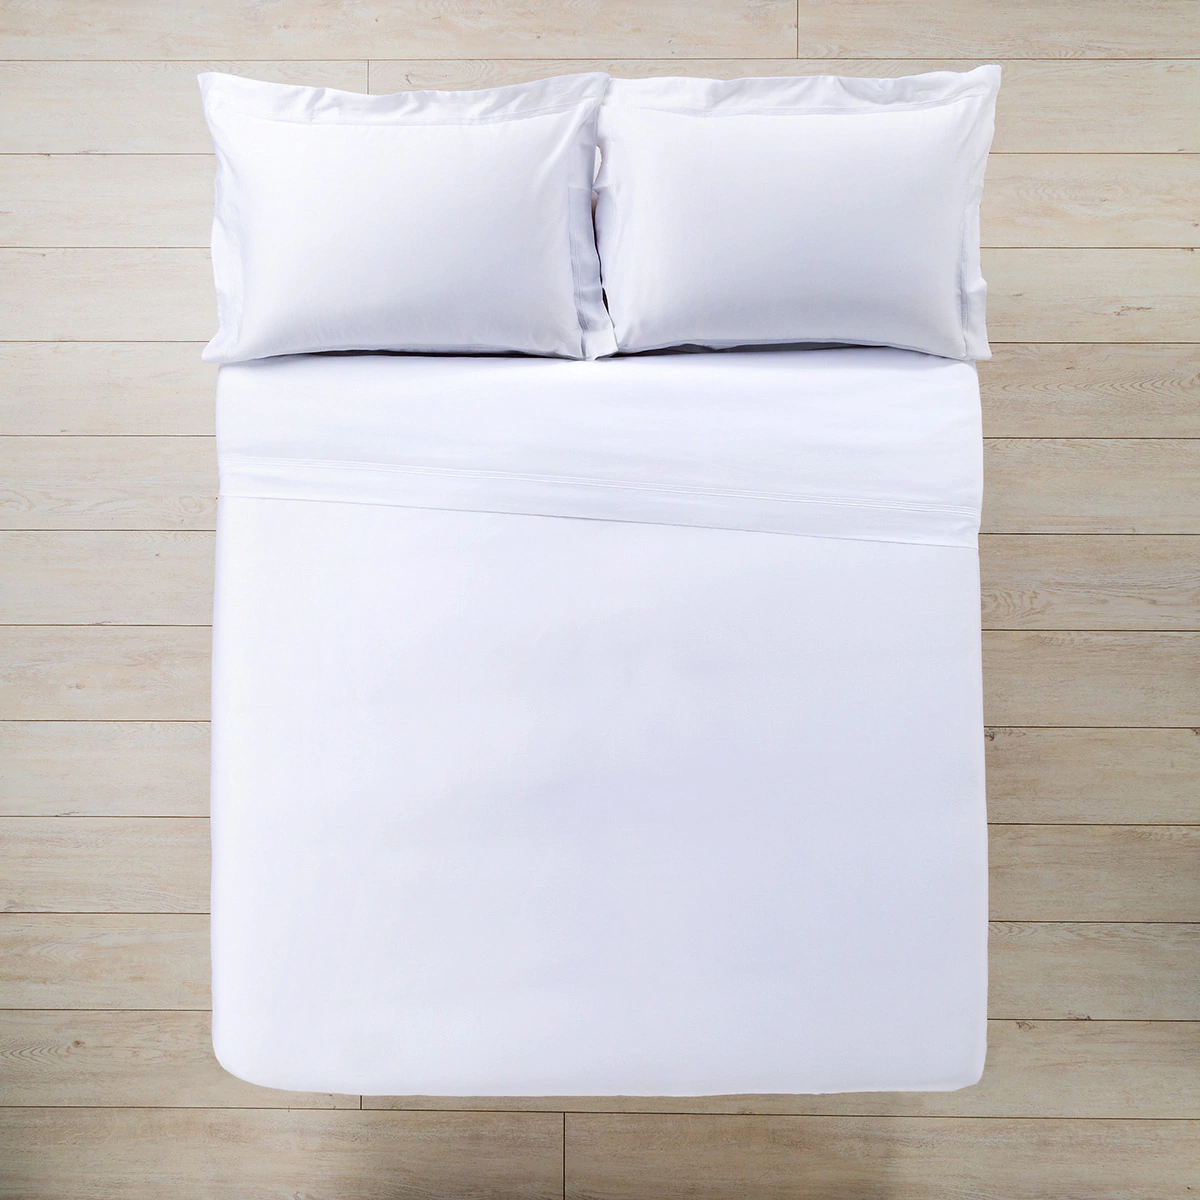 Satin duvet cover